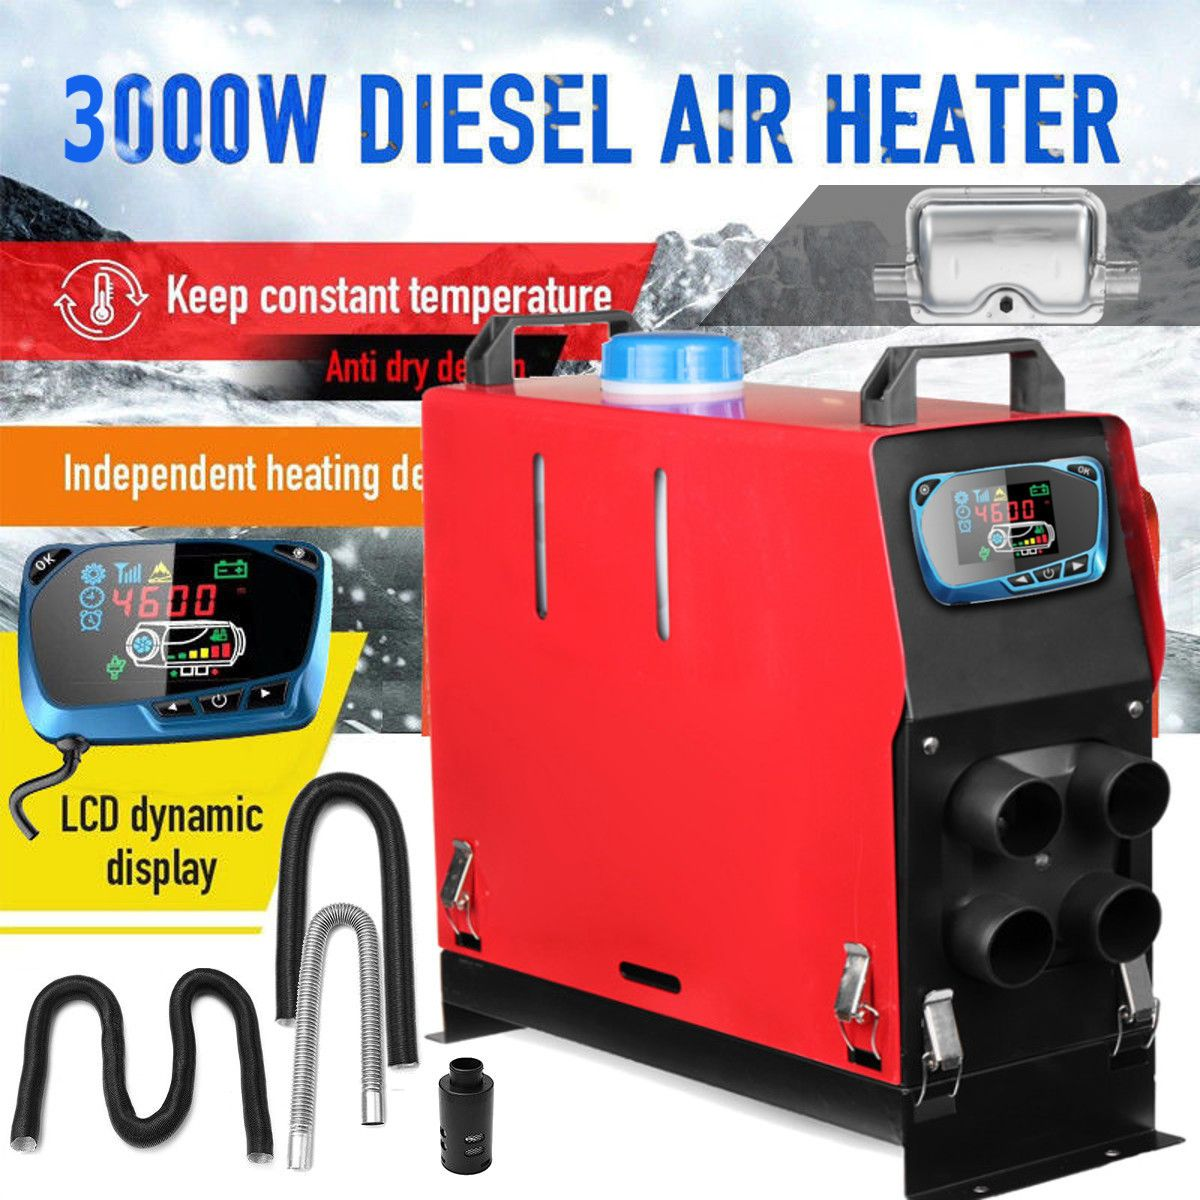 3000W Air diesels Heater 3KW 12V Car Heater For Trucks Motor-Homes Boats Bus +Newest LCD key Switch + Silencer